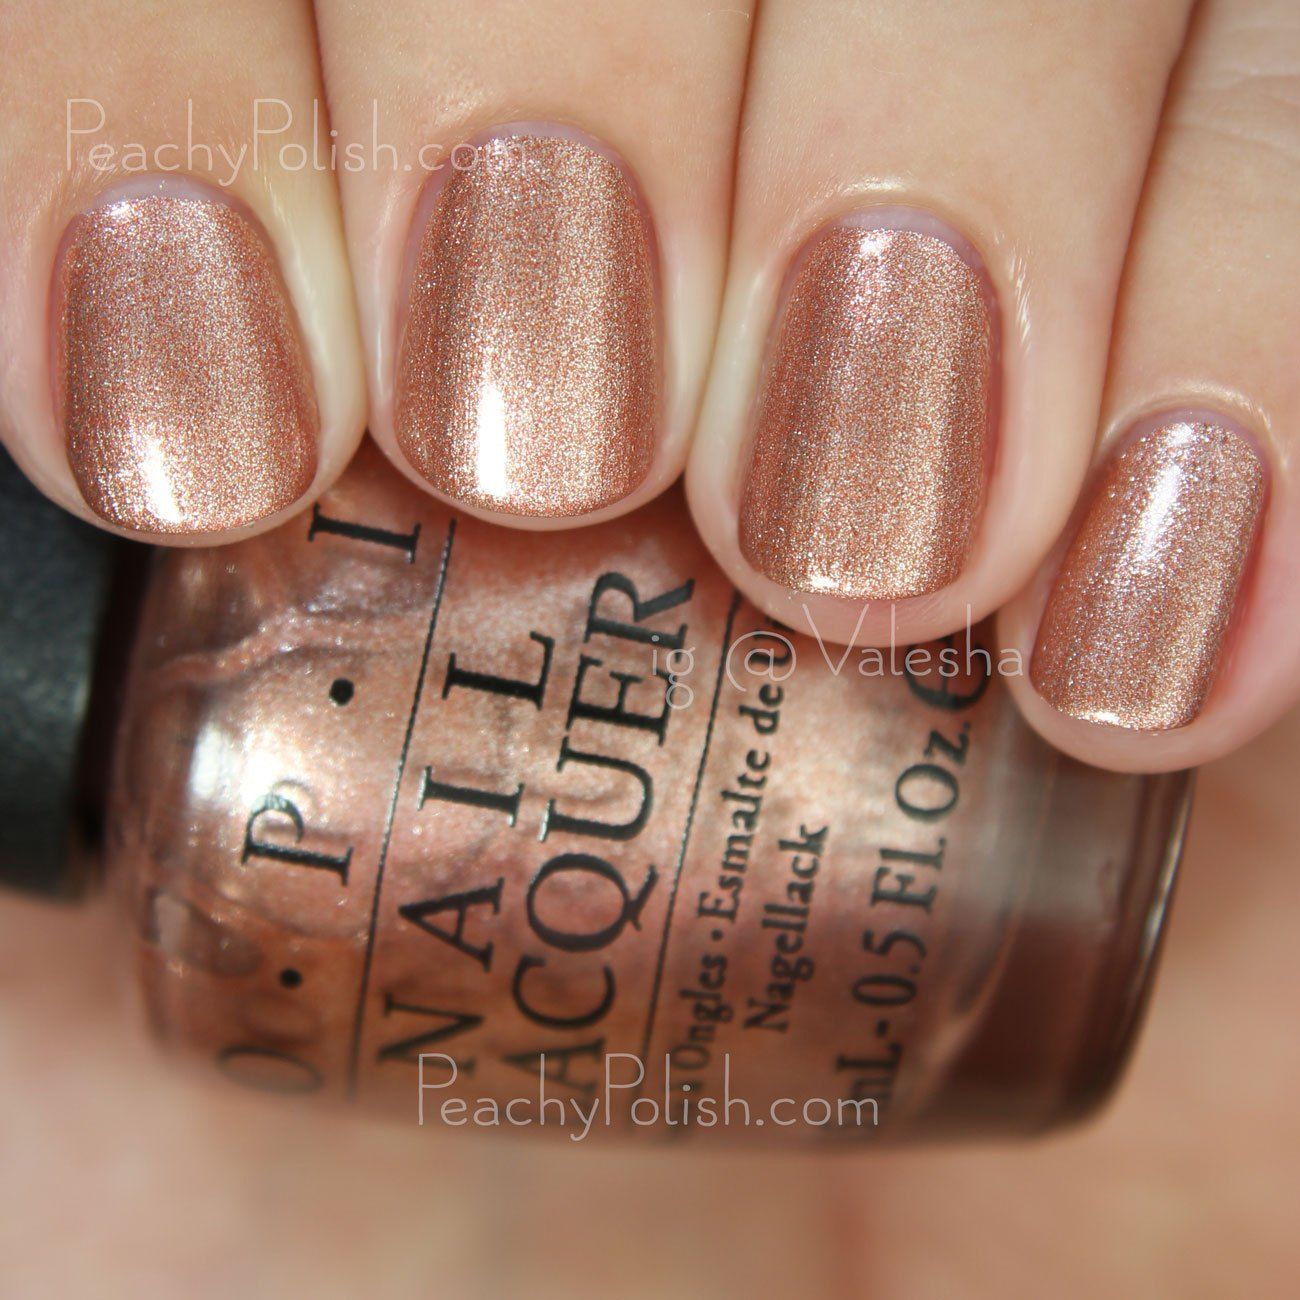 "OPI Worth A Pretty Penne | Fall 2015 Venice Collection | Peachy Polish says ""Worth A Pretty Penne"" is a pale copper foil. This is definitely unique to my collection. Love this in a Fall collection. Great formula too. 2 coats but it's a one-coater."